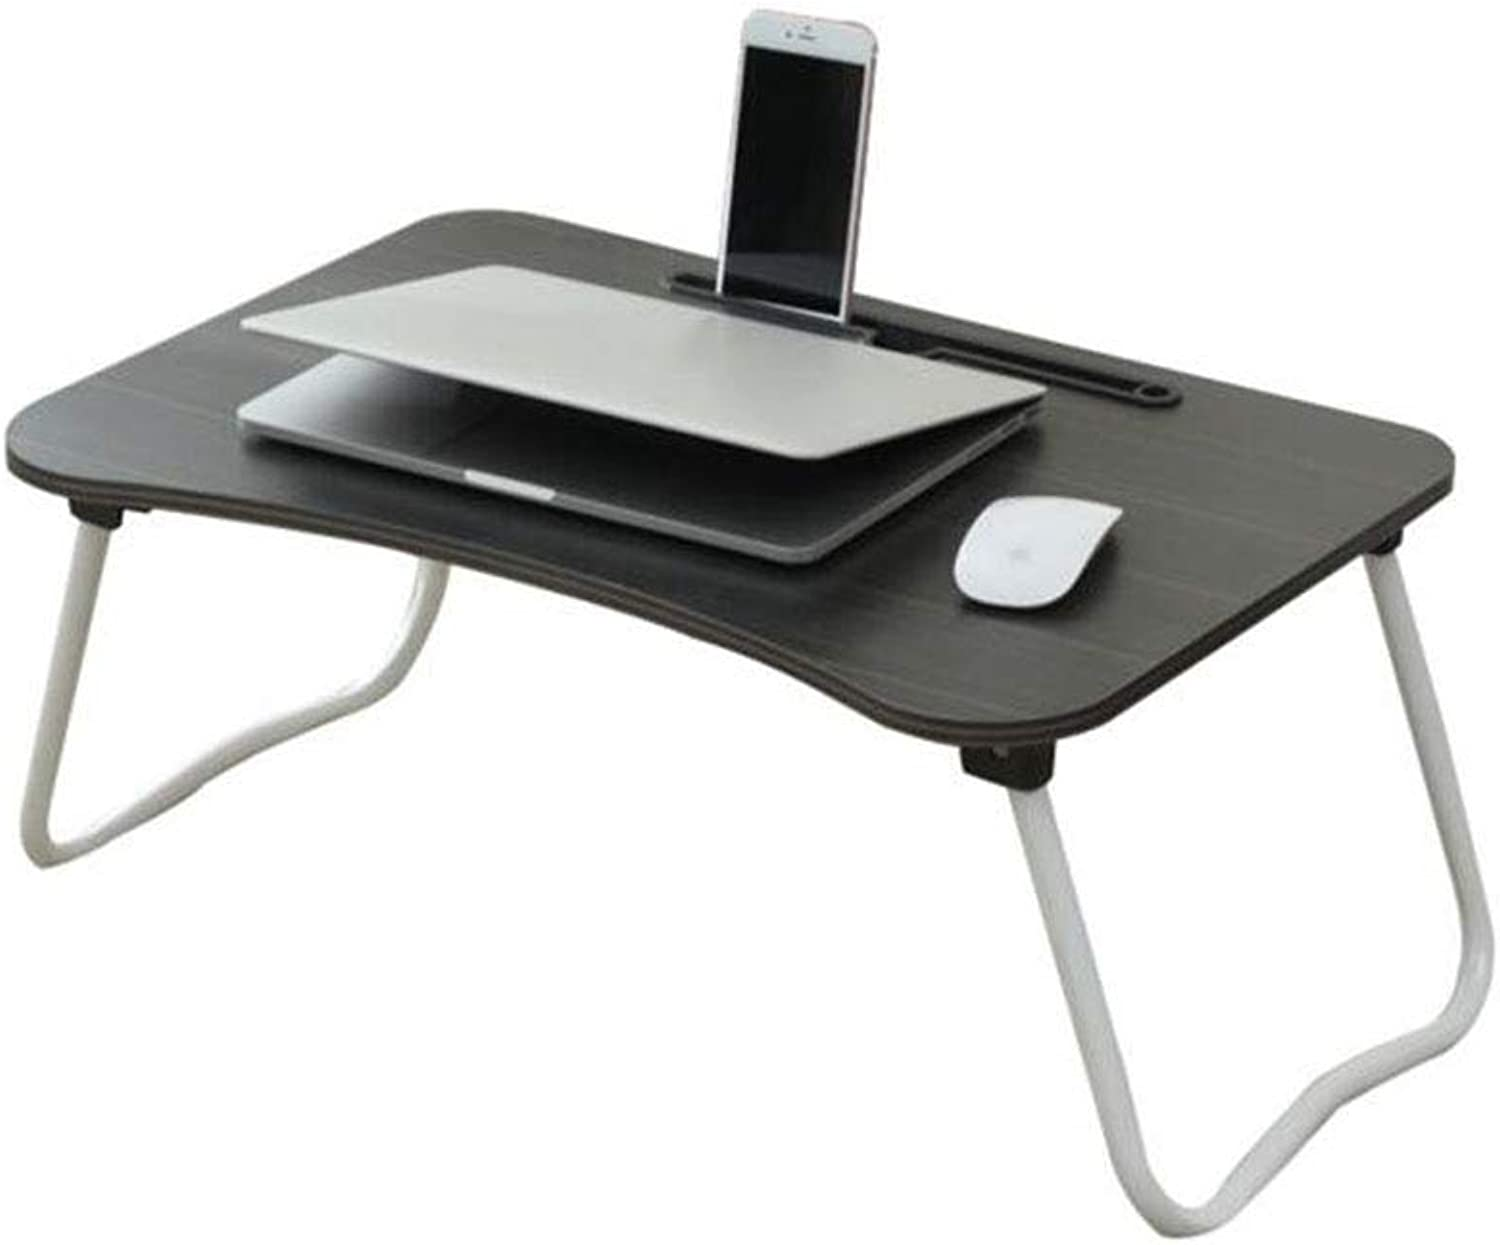 Goquik Computer Desk Bed with College Dormitory Small Table Foldable Lazy Learning Writing Desk